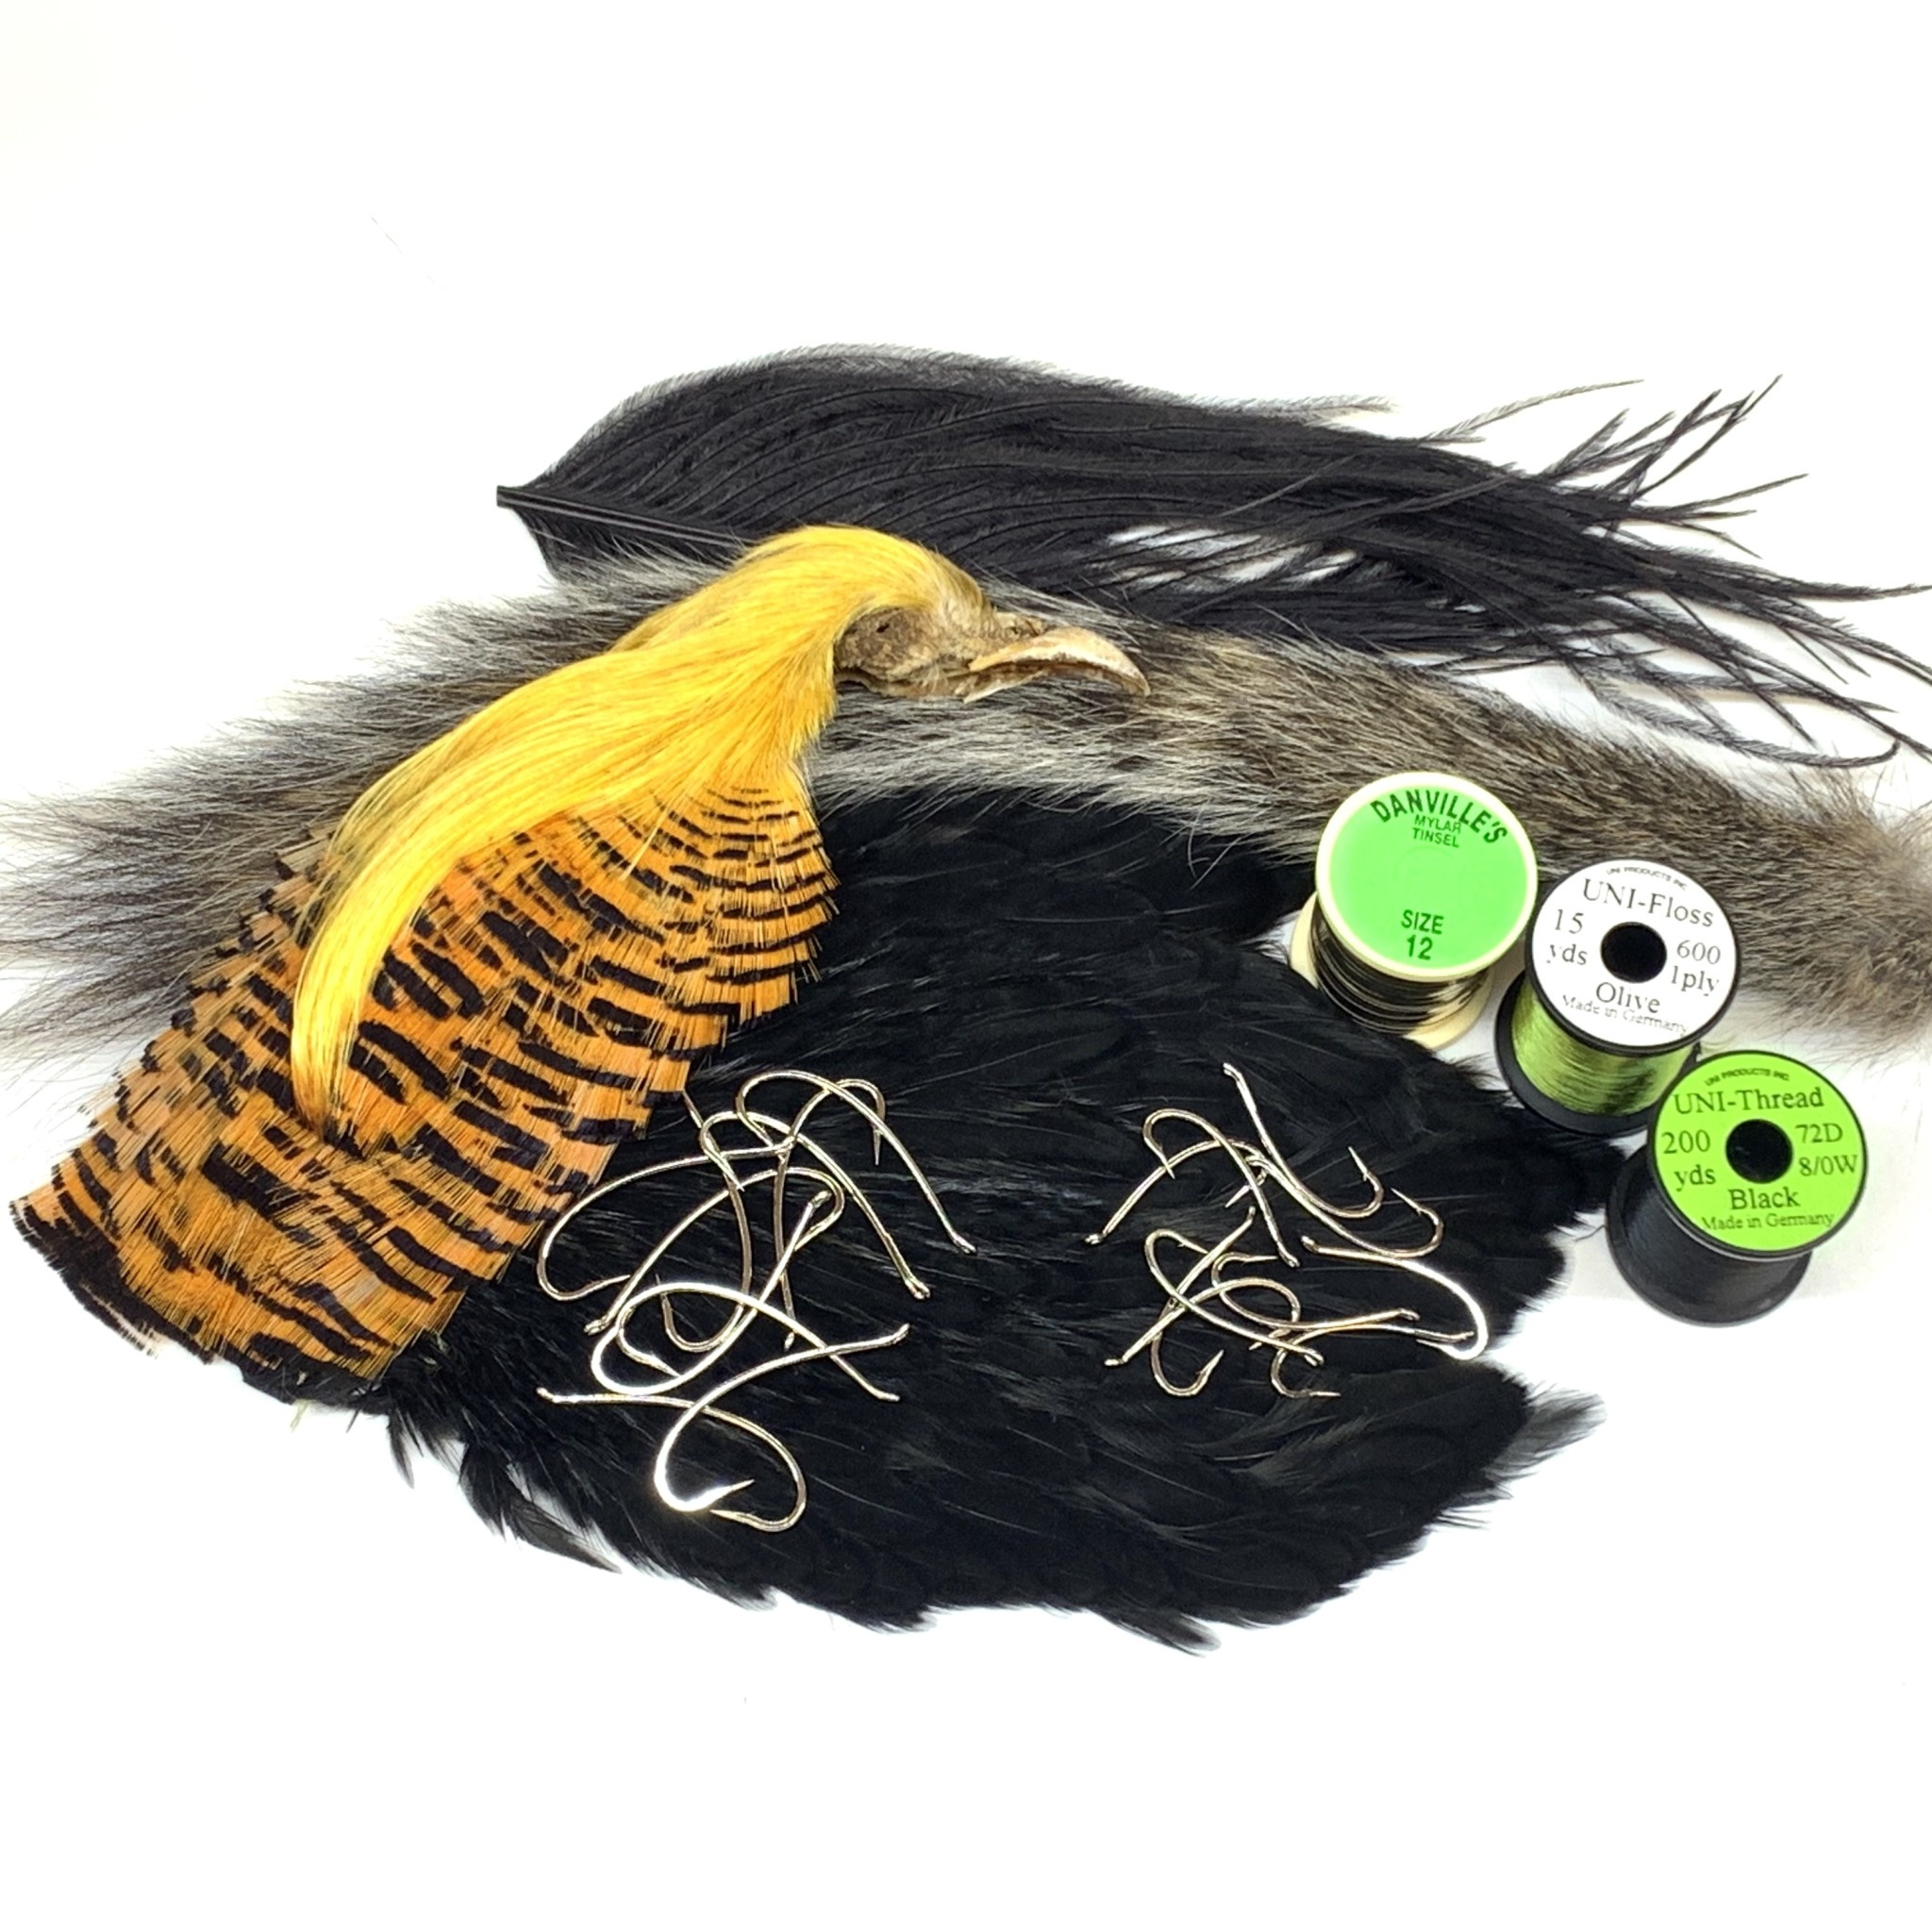 The Green Ant Fly Tying Kit